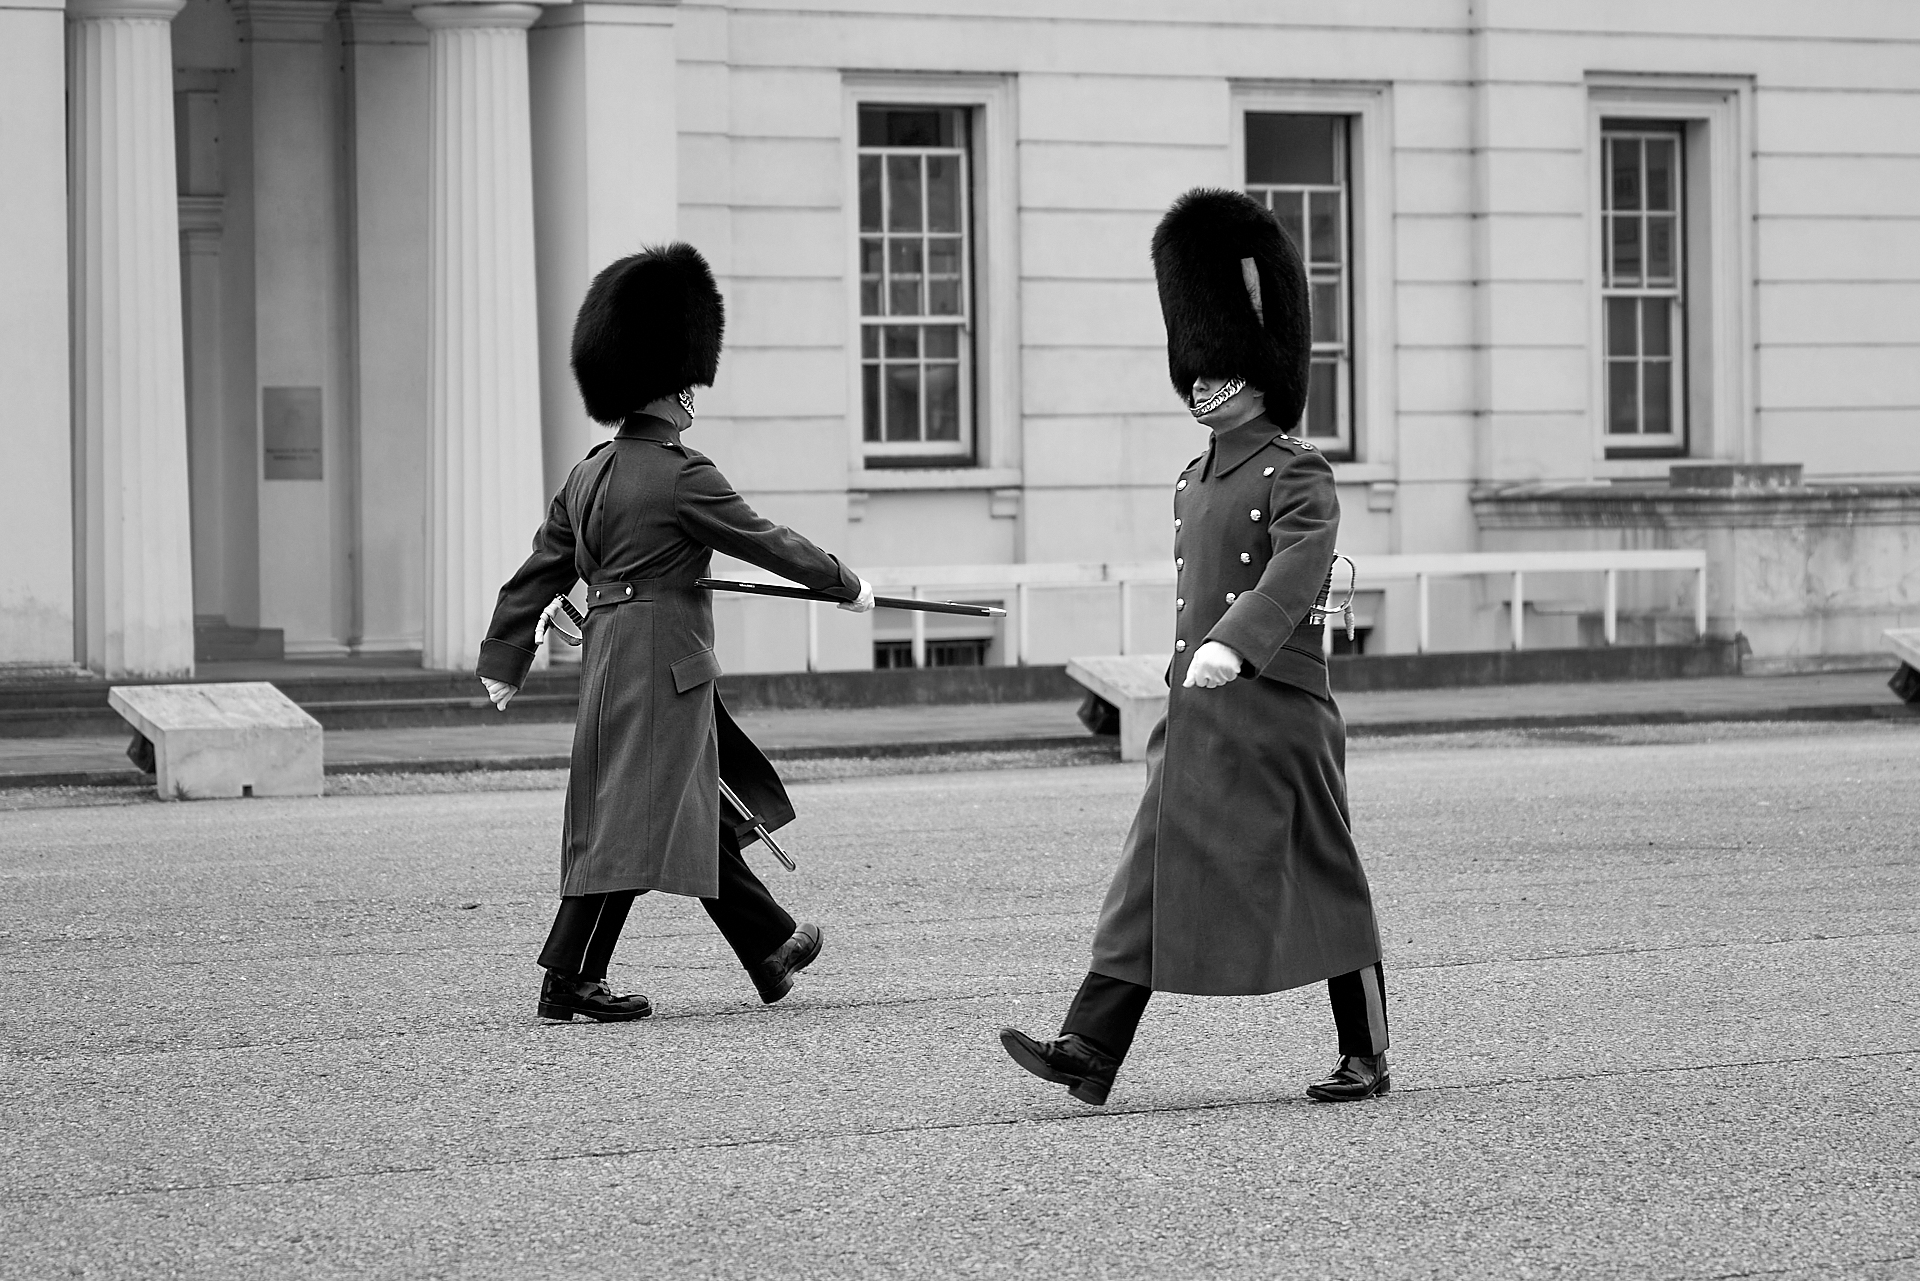 WALKING IN LONDON - ©Fotografia di Massimiliano Ferrari - Brescia